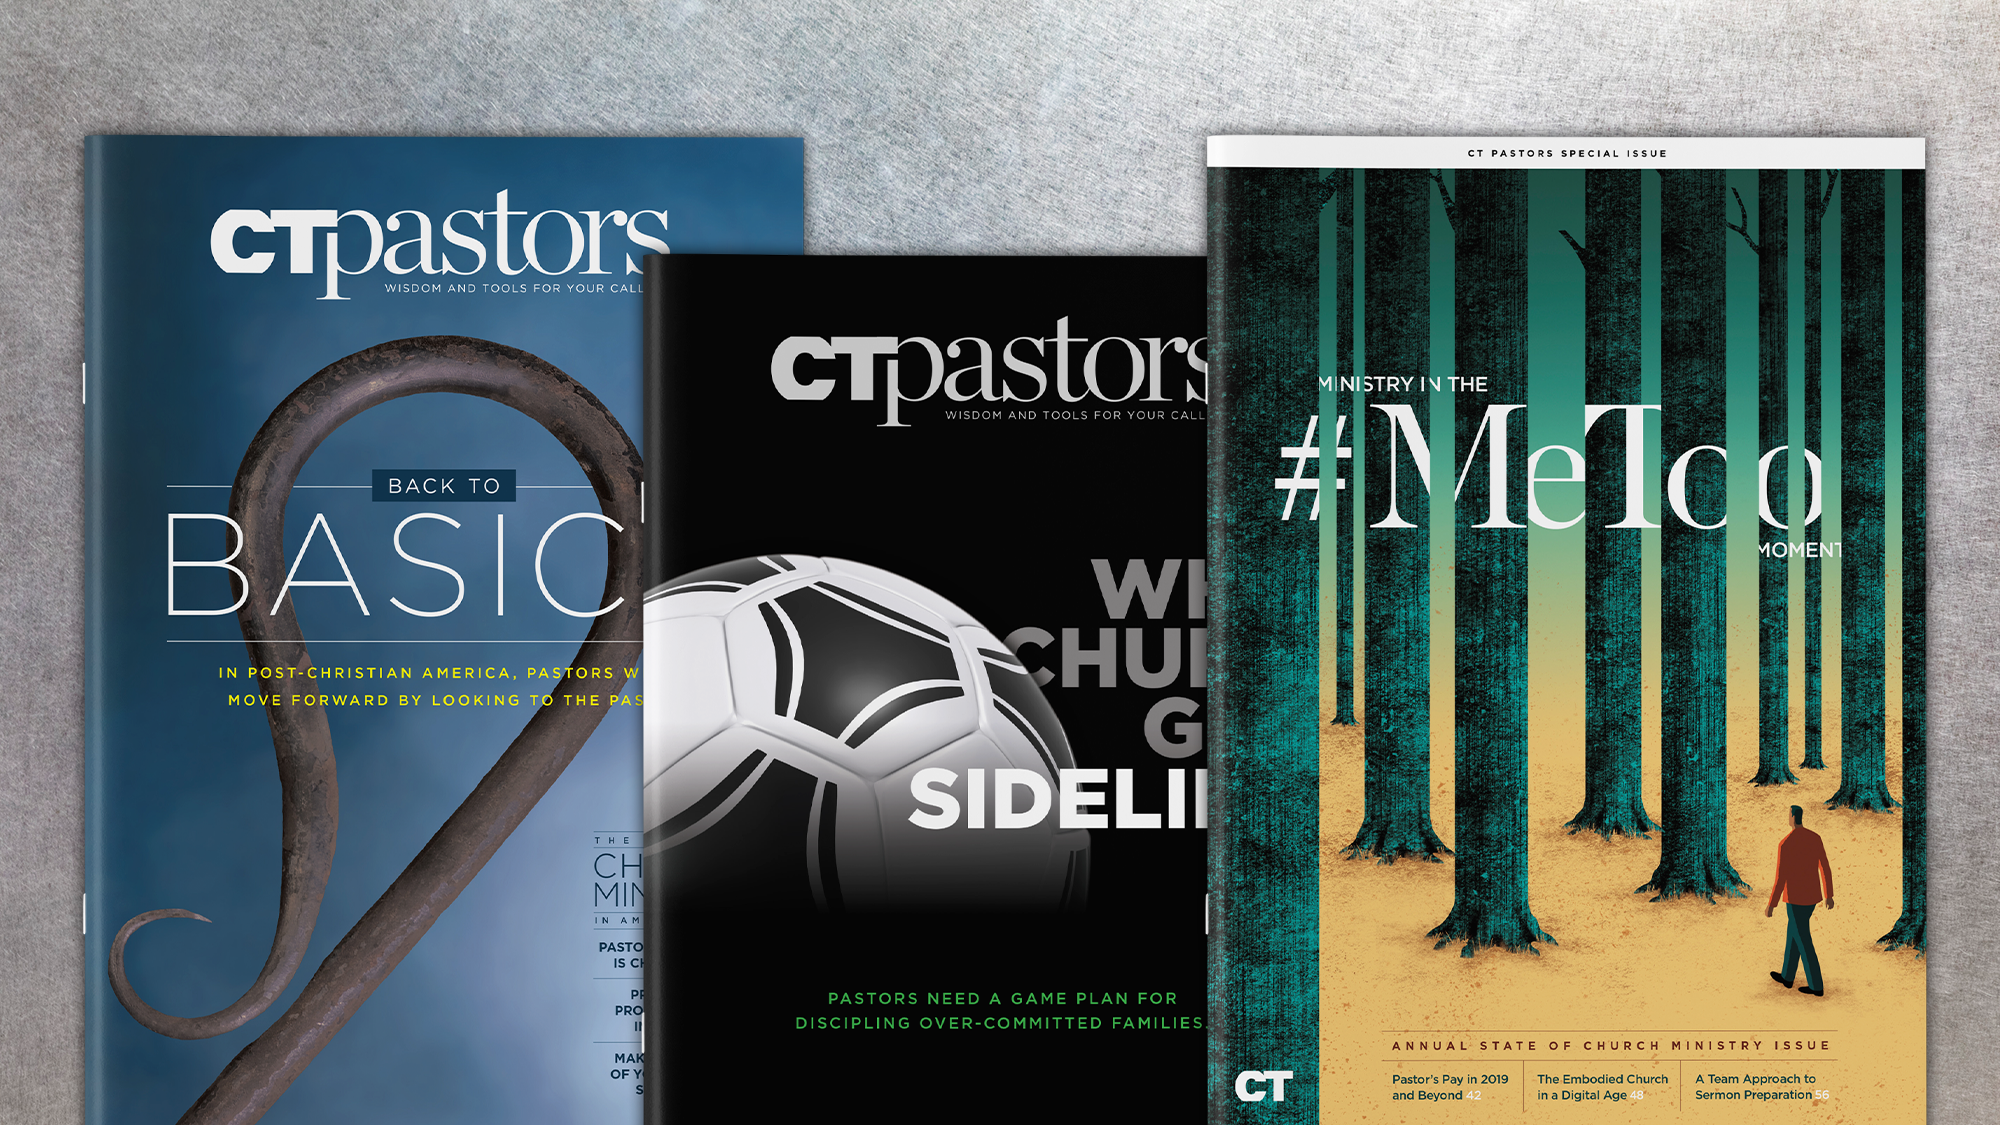 CT Pastors | Church Leaders & Leadership Training